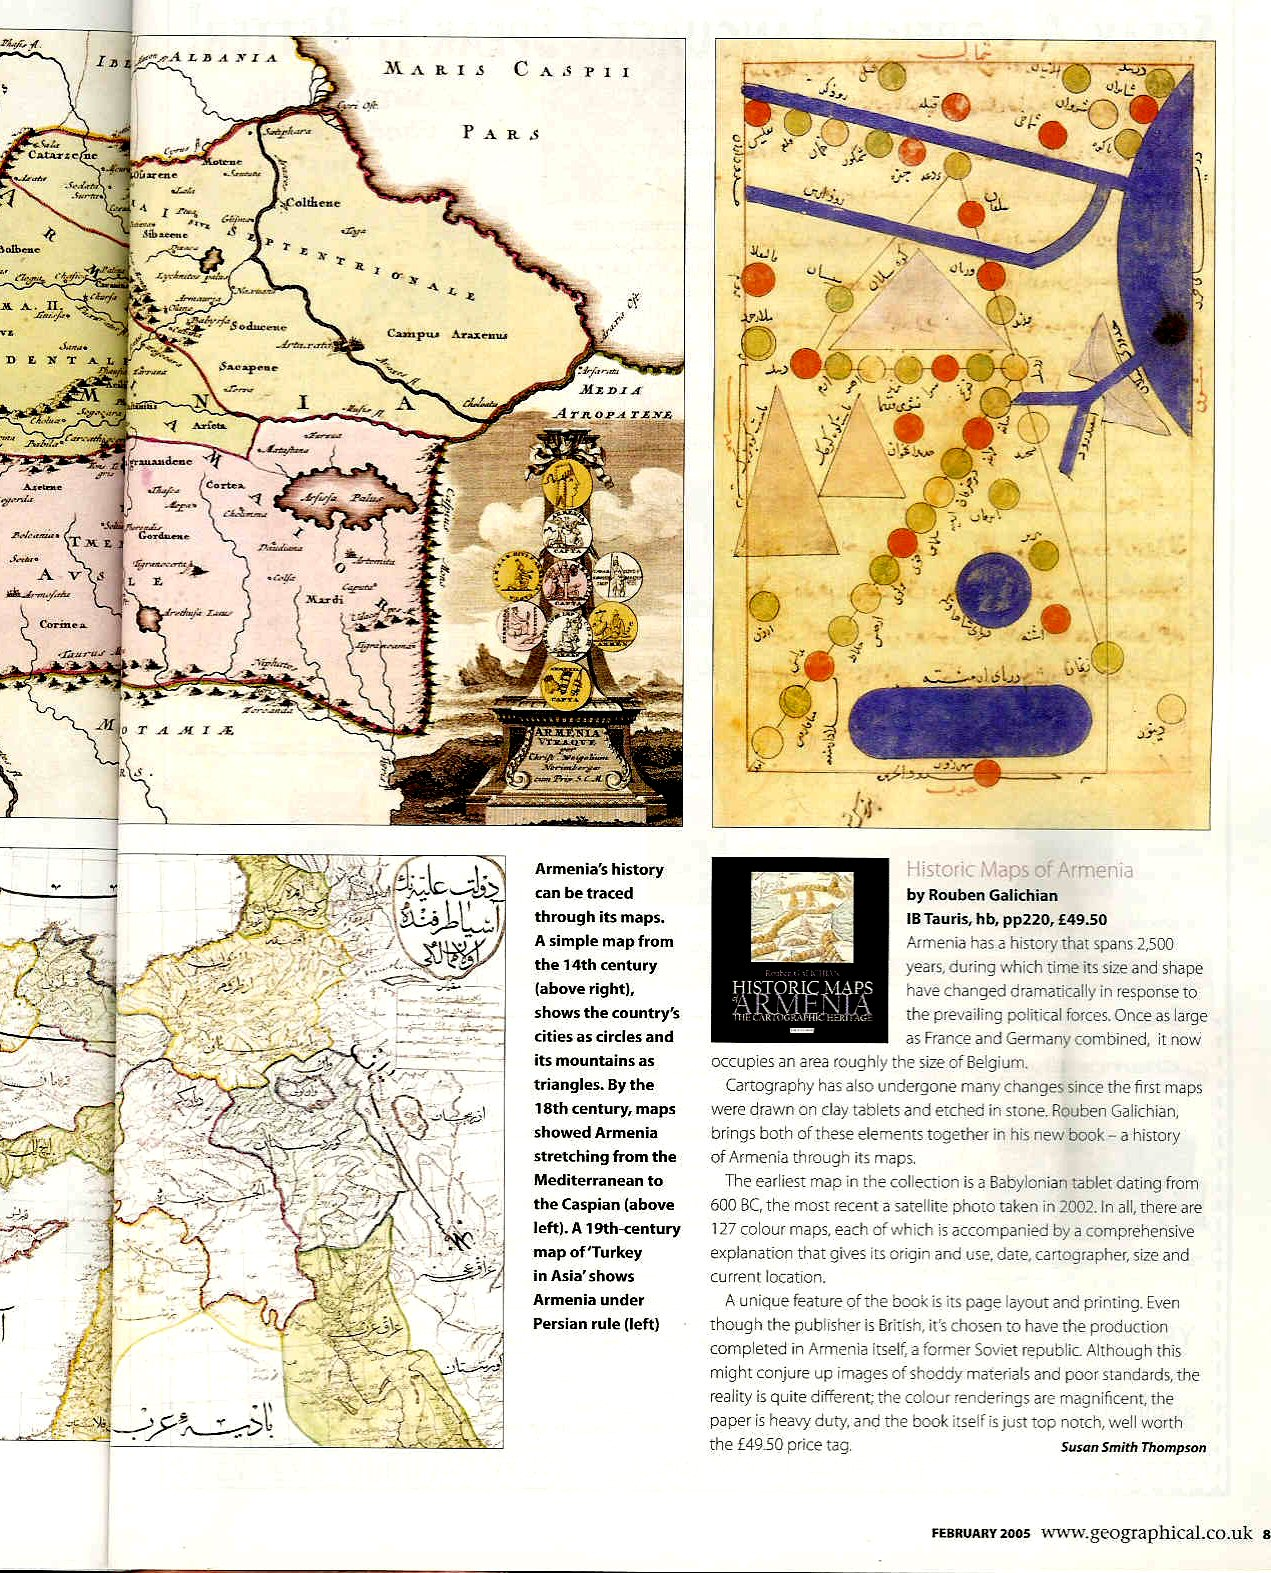 Book review published in Geographical Magazine